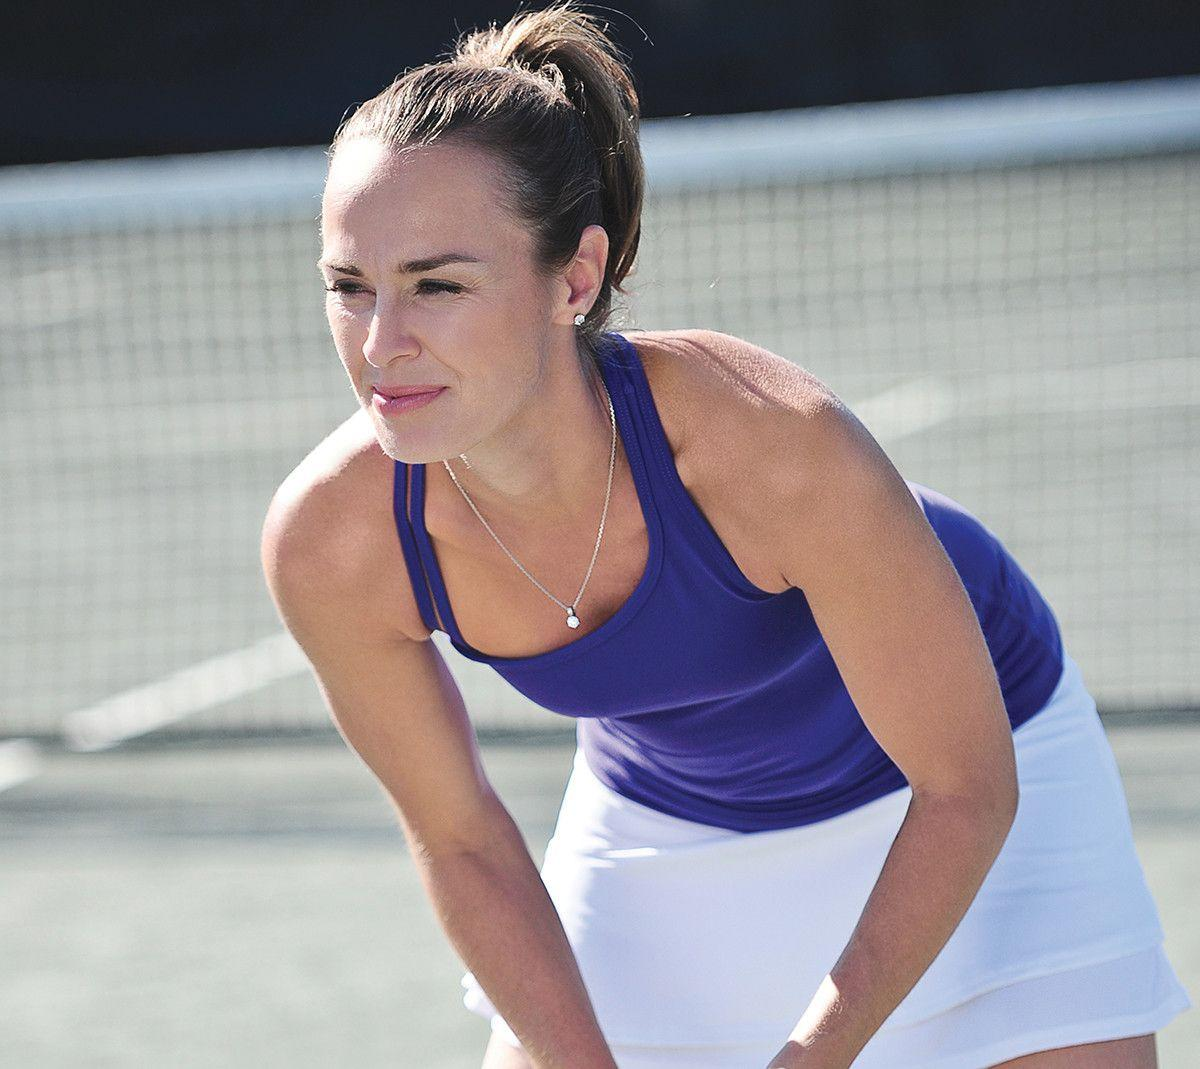 Martina Hingis Wallpapers 14